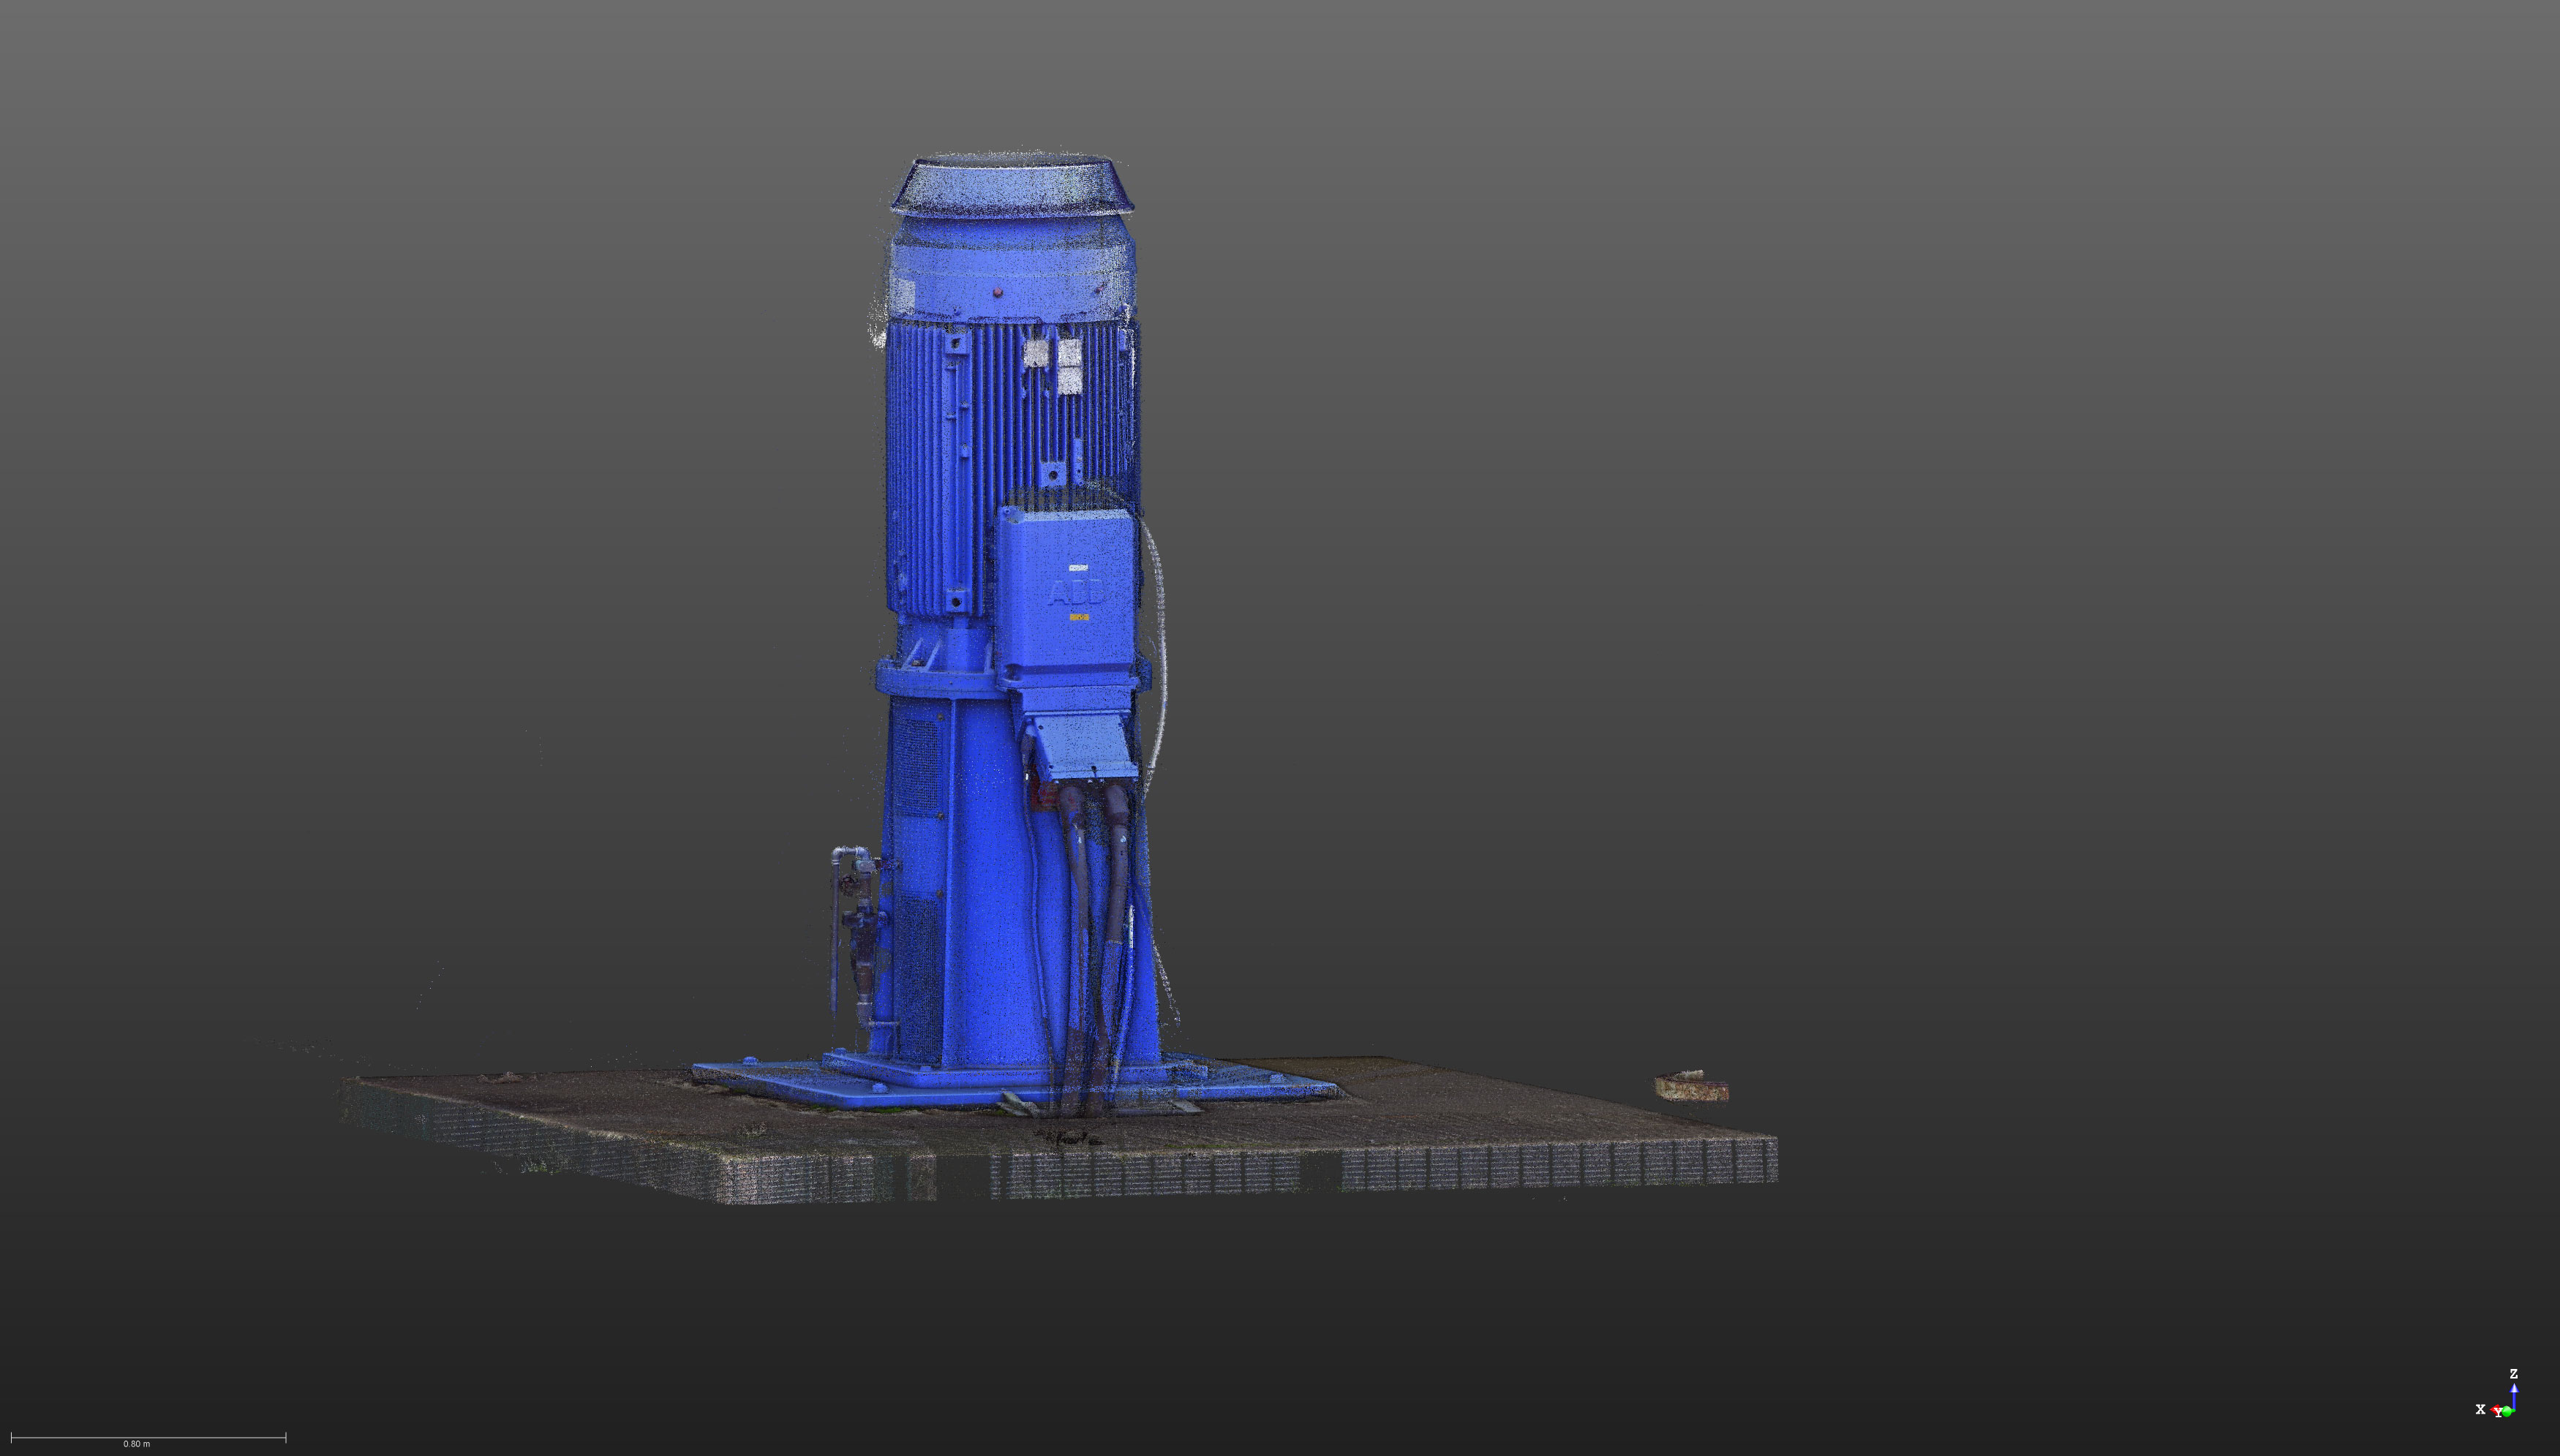 Laser Scan of Pump | Laser Scanning